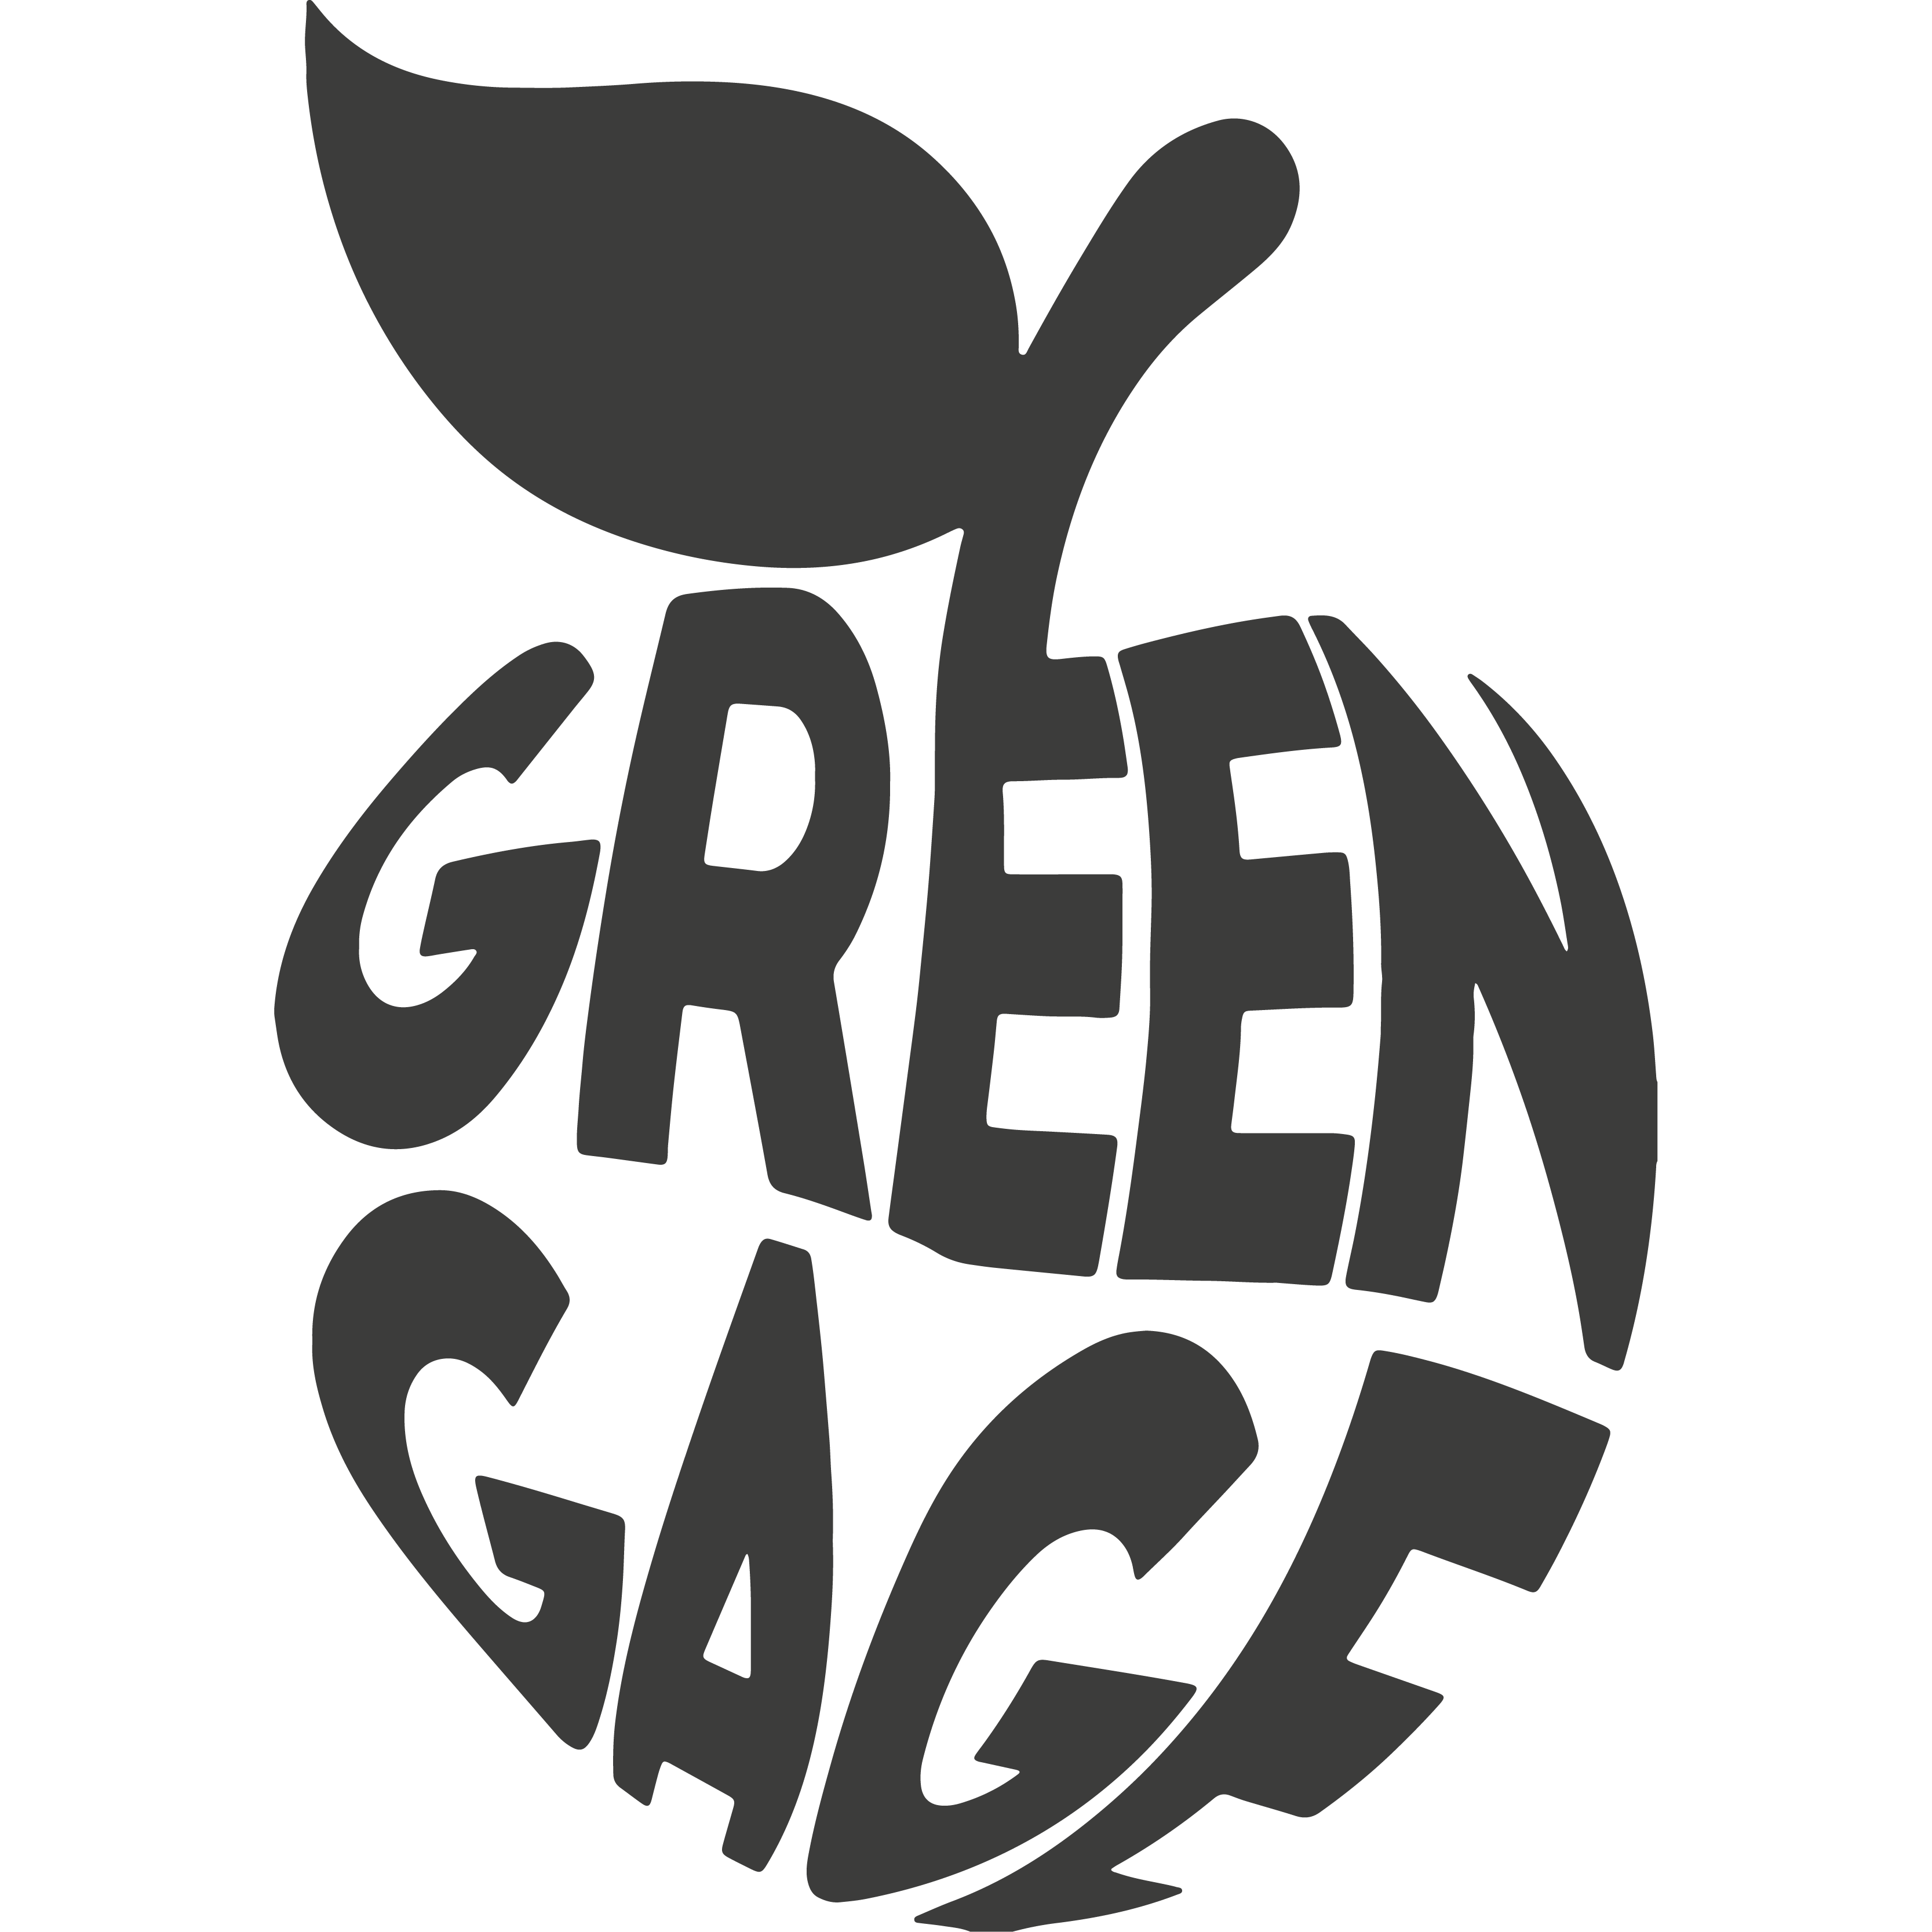 Greengage logo in black